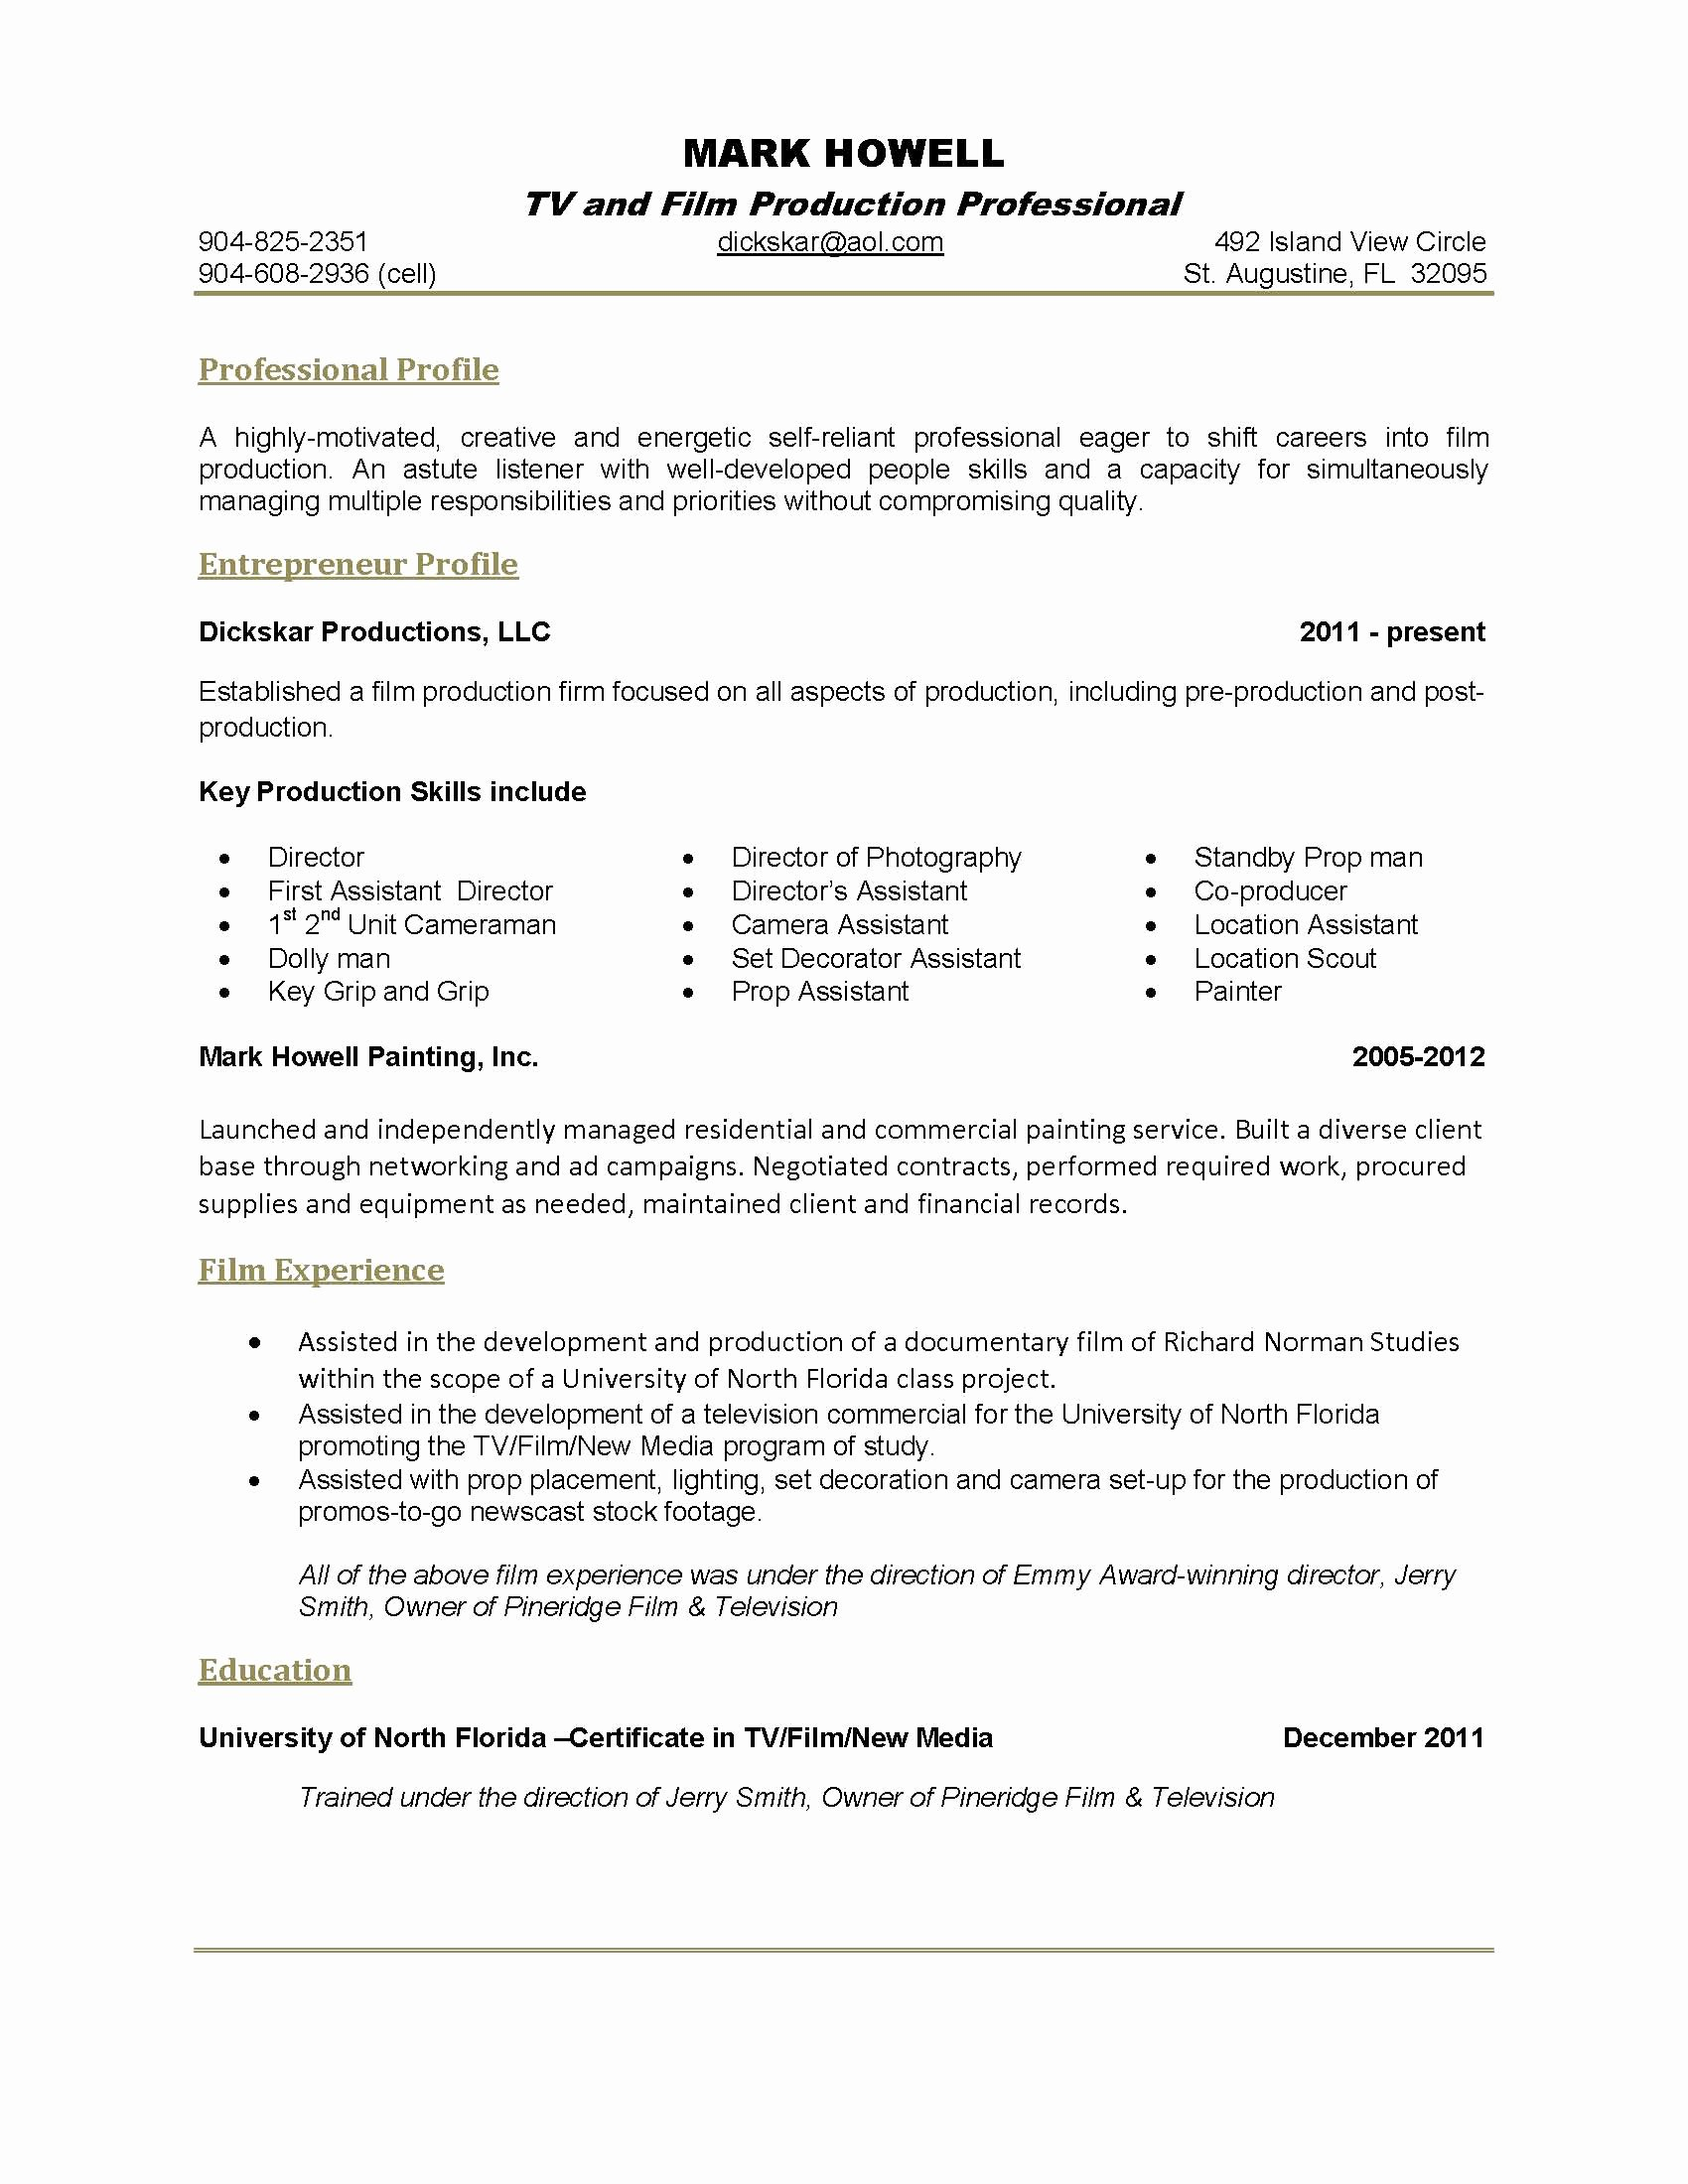 Interfolio Letter Of Recommendation Fresh Best Letter Of Re Mendation Writing Services In Nyc